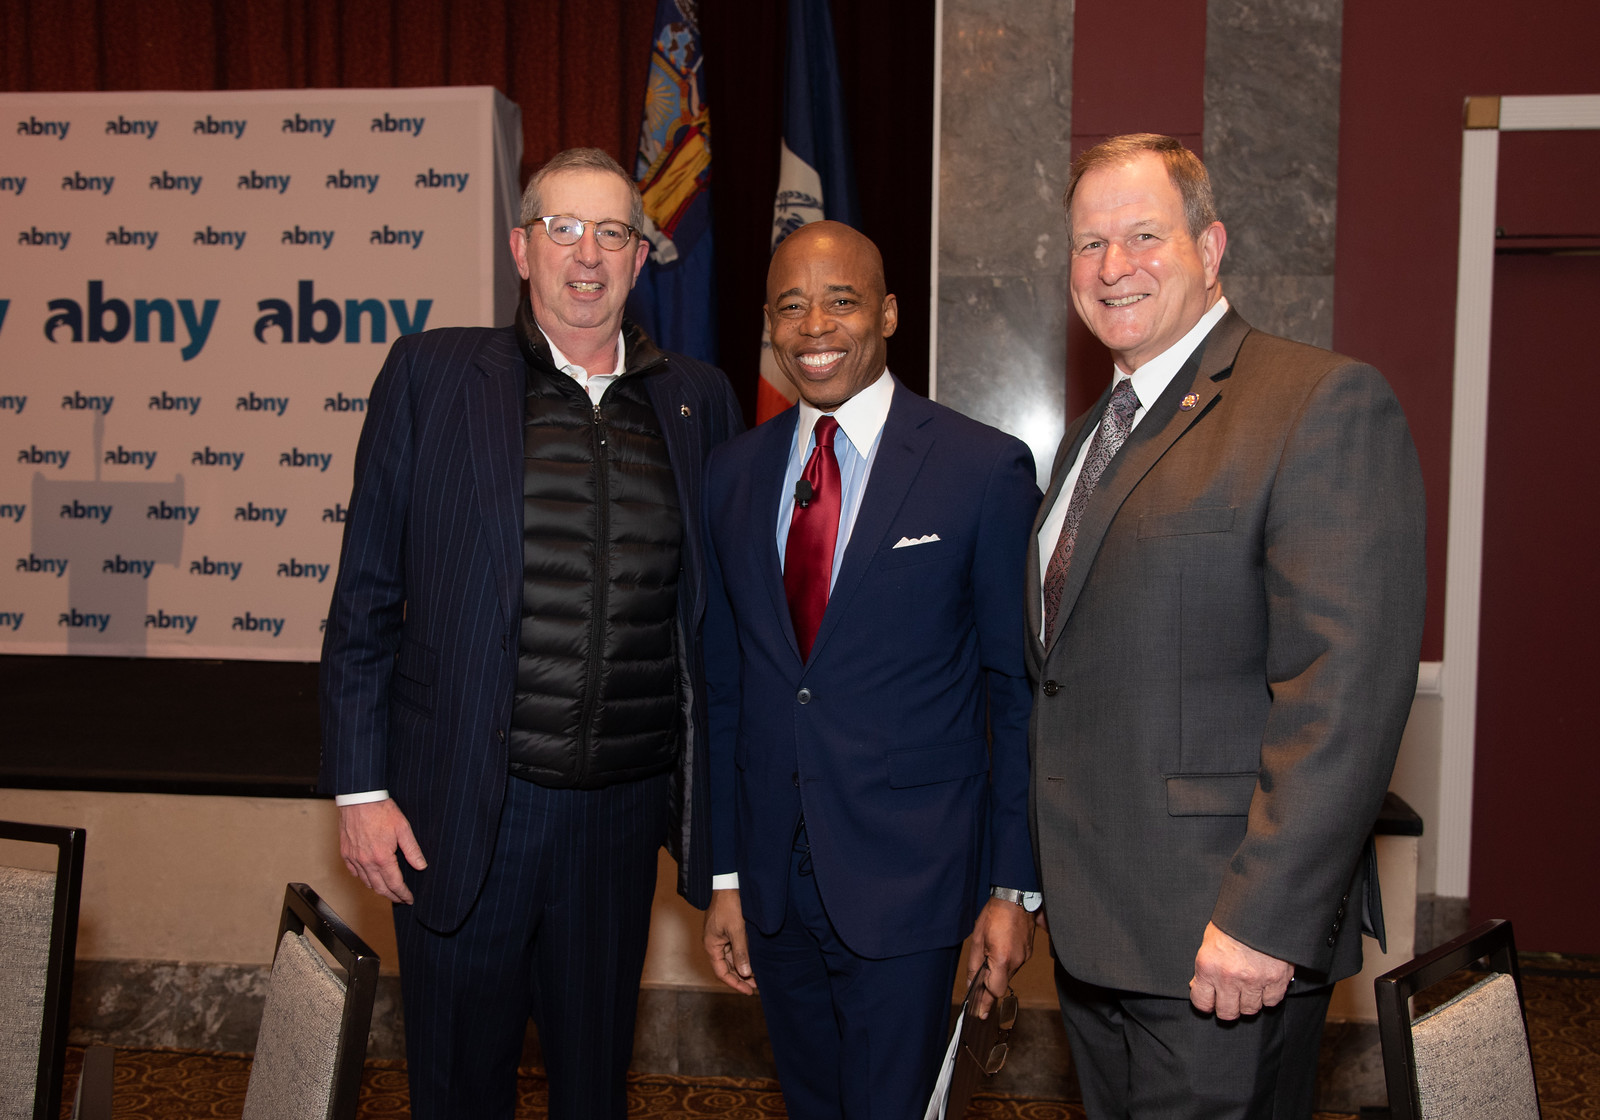 01.22.20 - Power Breakfast with Brooklyn Borough President Adams